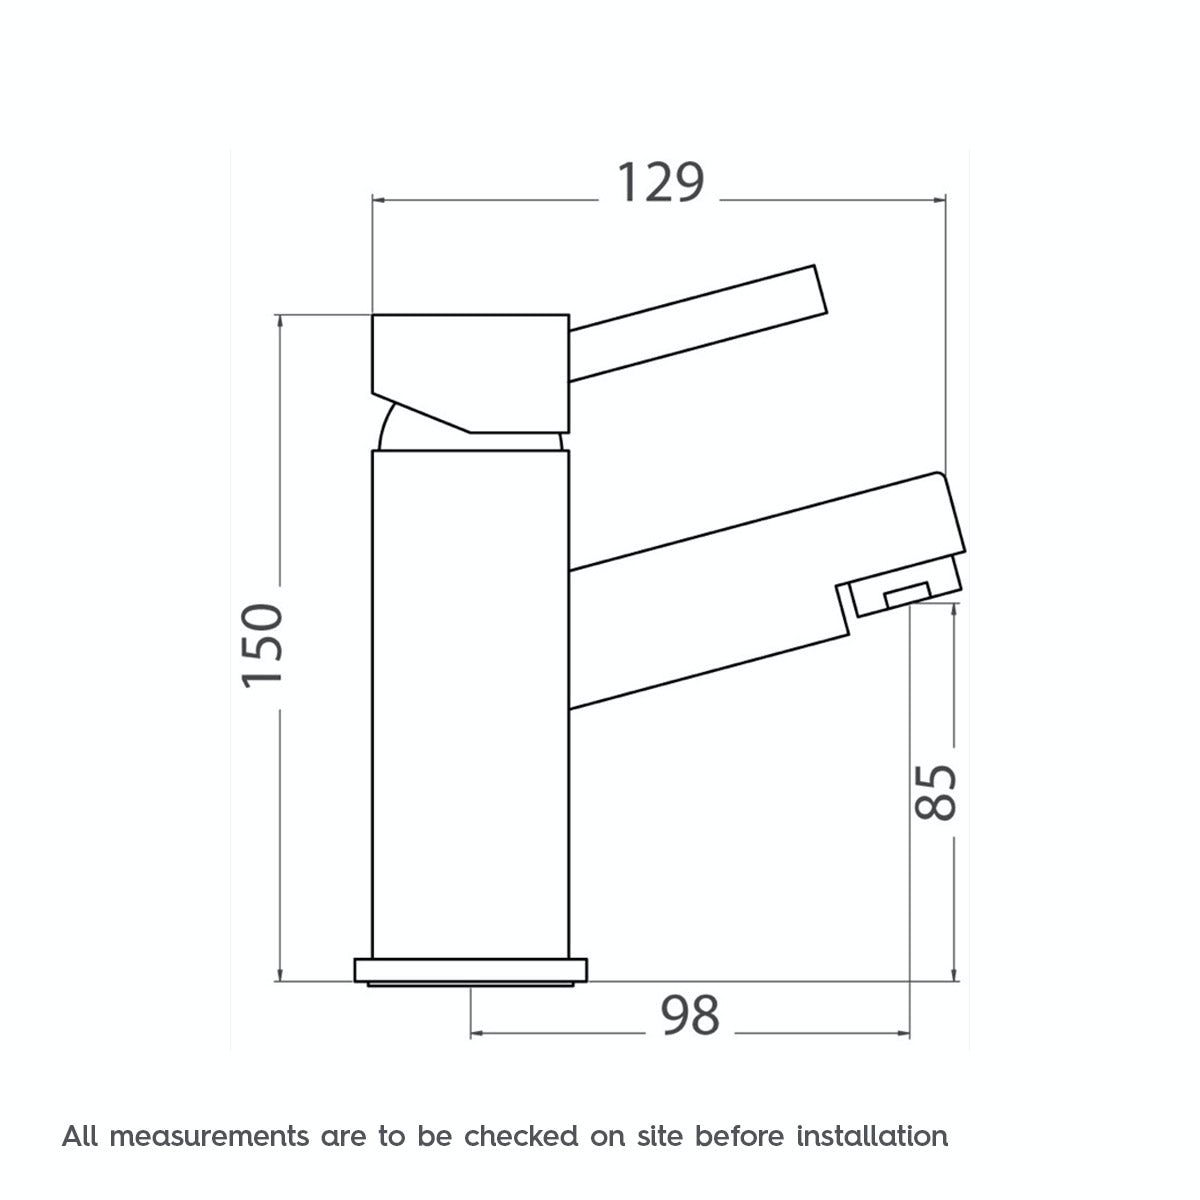 Dimensions for Orchard Wharfe basin mixer tap